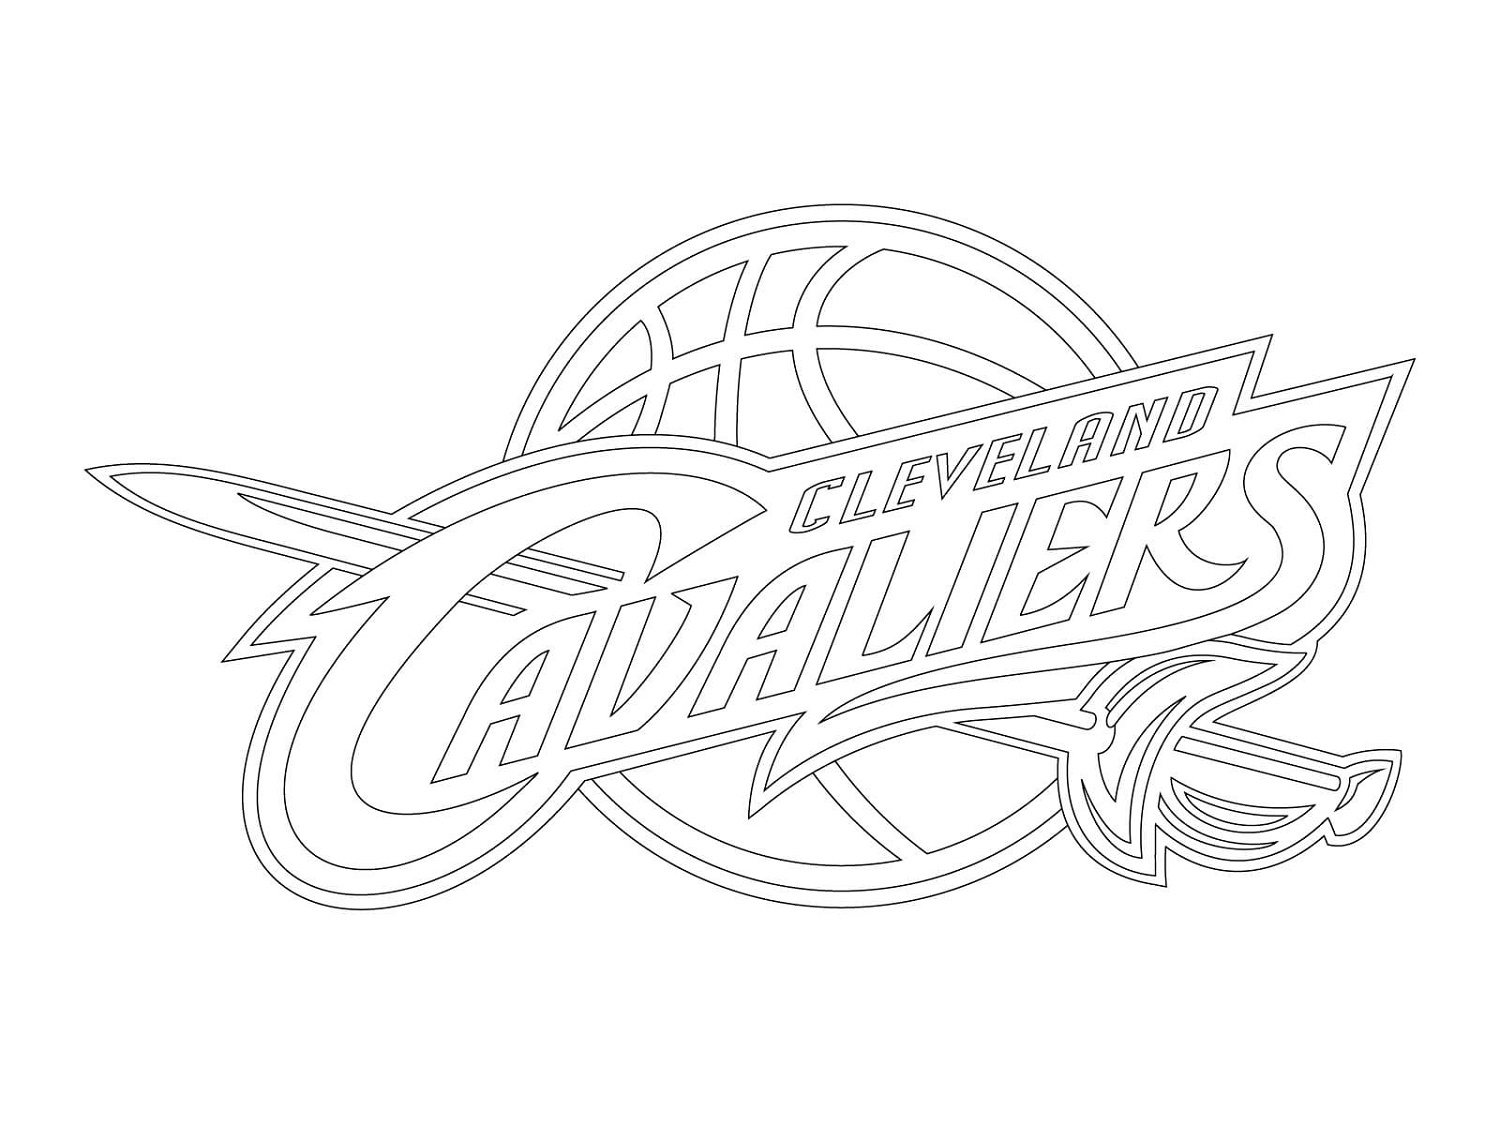 Cavs Coloring Pages Cleveland Cavaliers